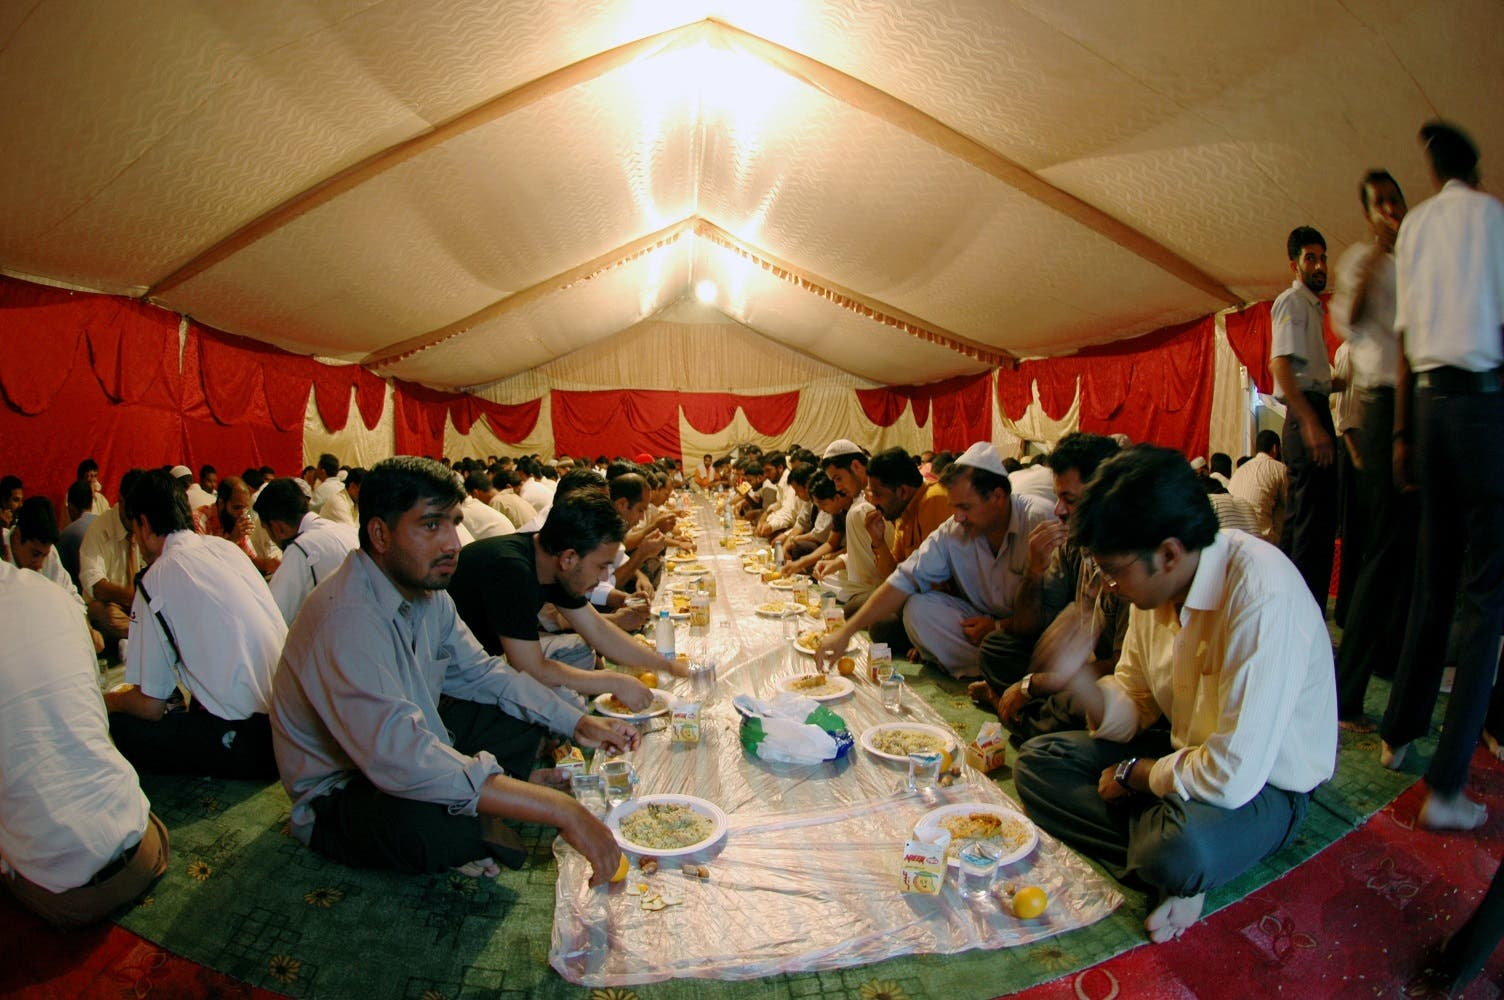 Muslim labourers and workers prepare to break their fast during Ramadan in a charity tent set up to offer free iftar meals to poor working labourers in one of the residential areas in Dubai, UAE. (File photo: Reuters)